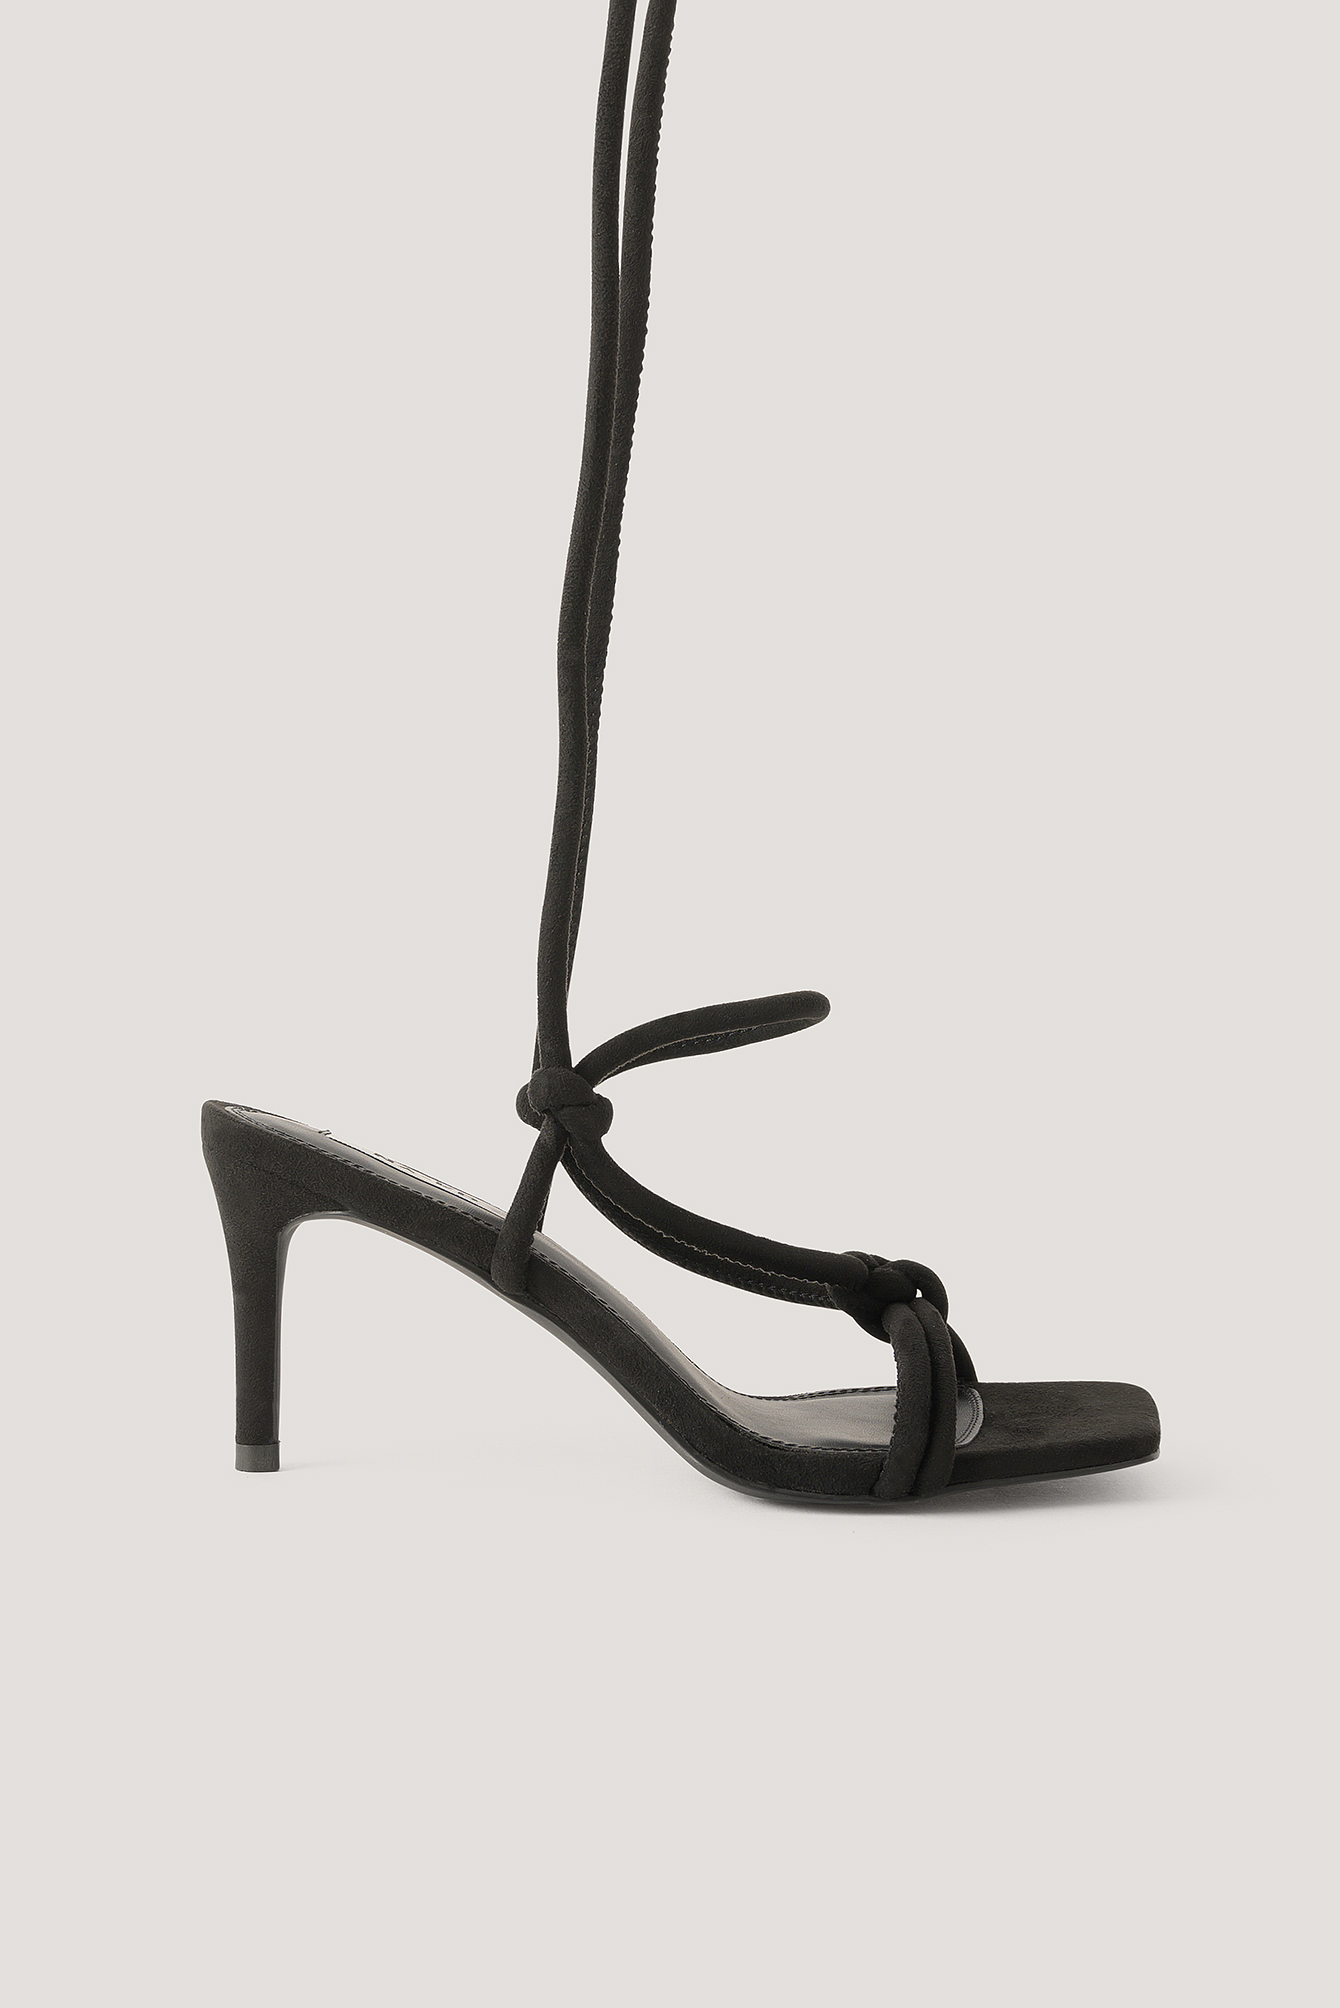 Black Knotted Straps Heeled Sandals